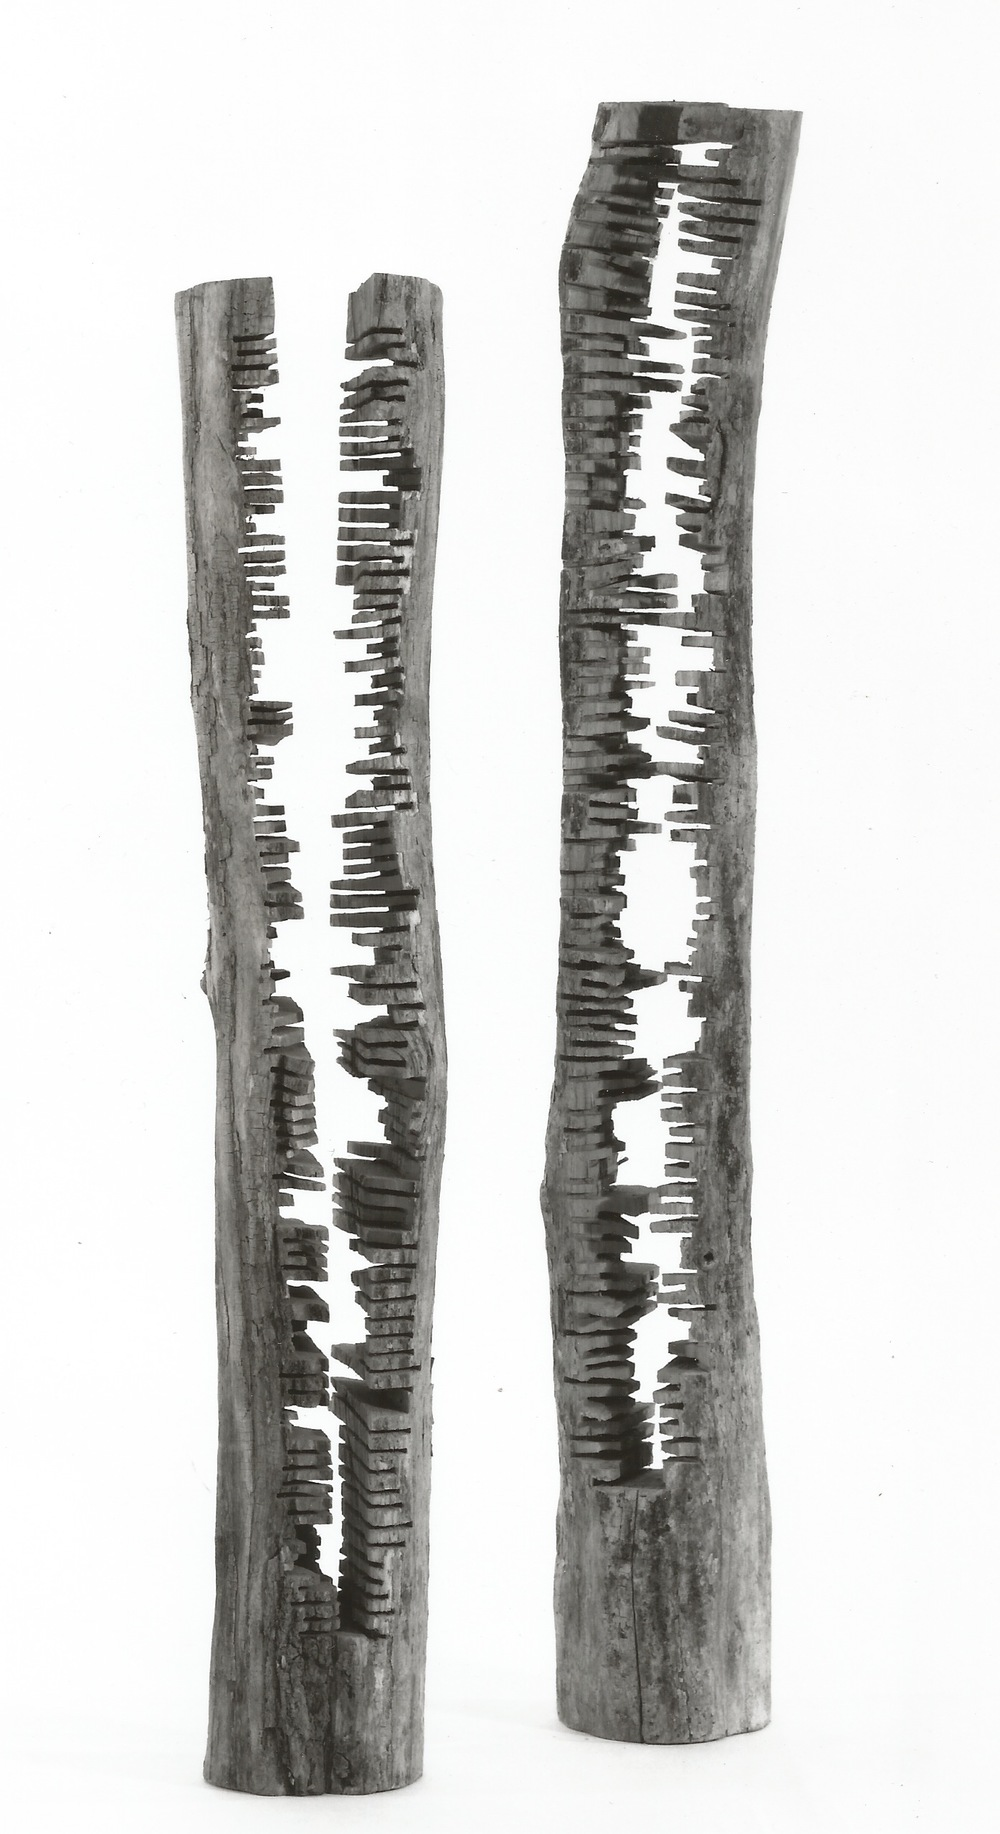 Totems, 1988, locust. Shorter: 77 inches in height, 14 inches in diameter; Taller: 88 inches in height, 11 inches in diameter.